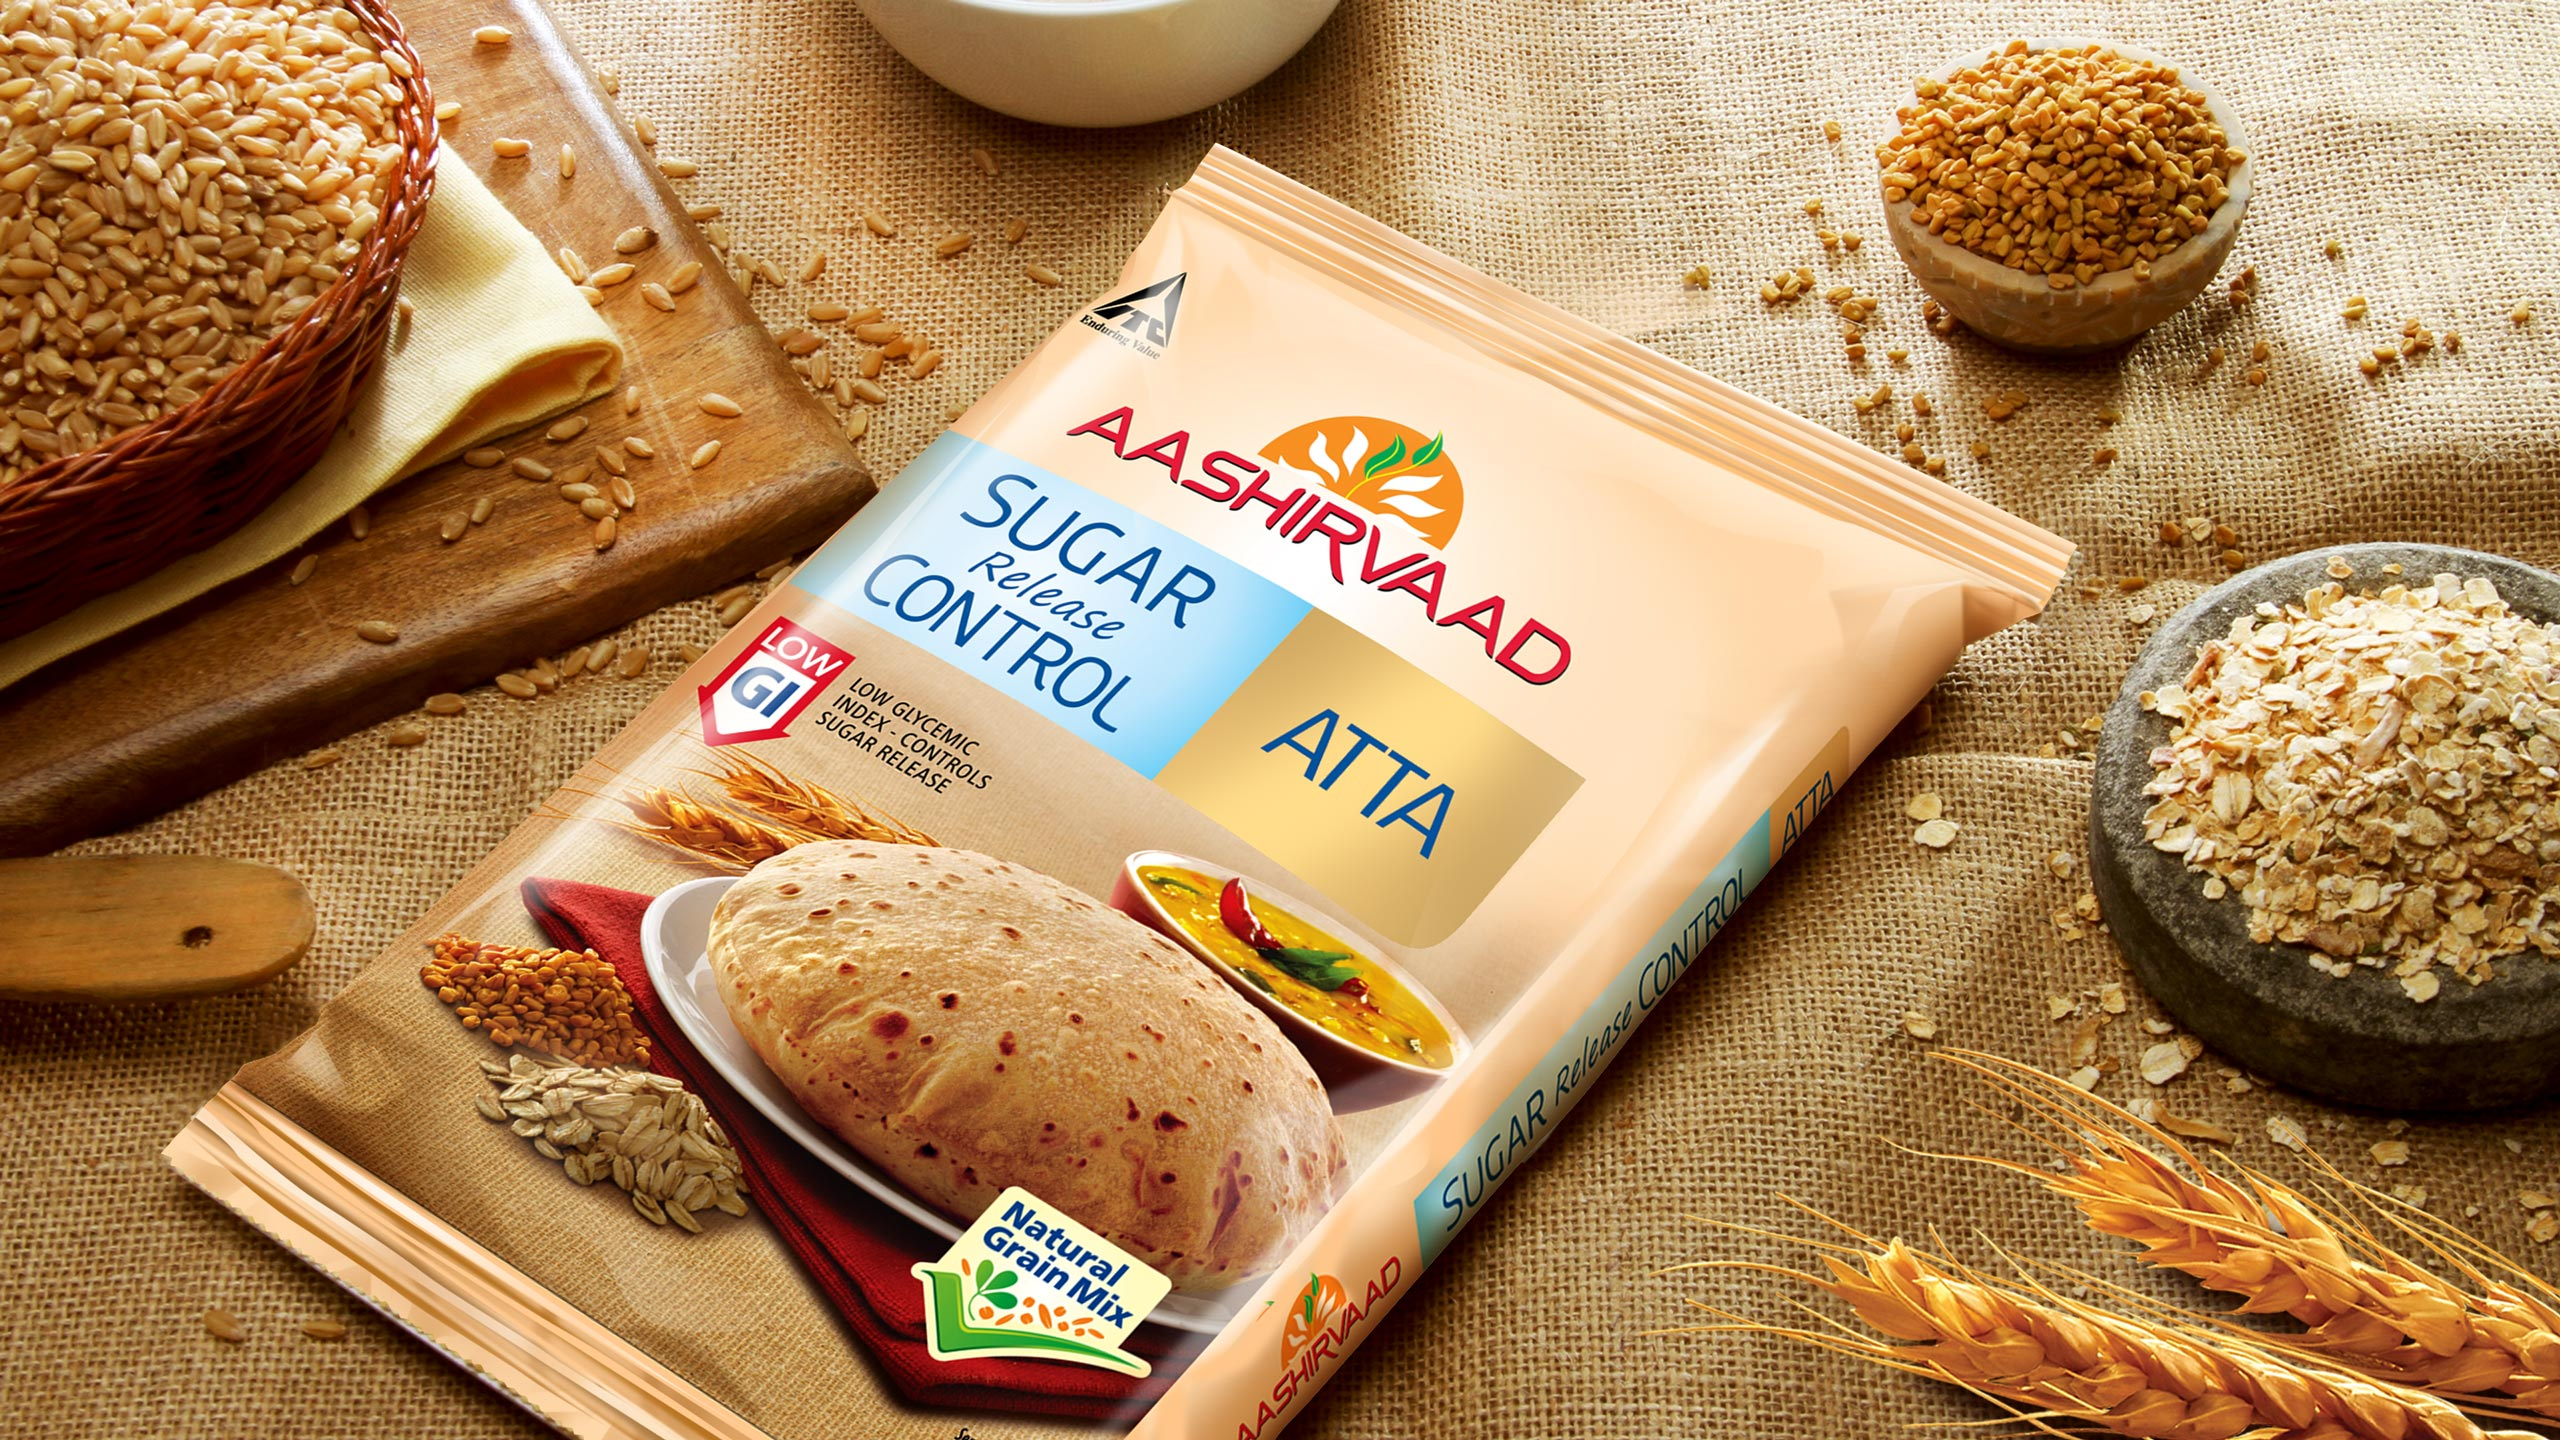 Packaging design for ITC Aashirvaad sub brand Aashirvaad low GI atta